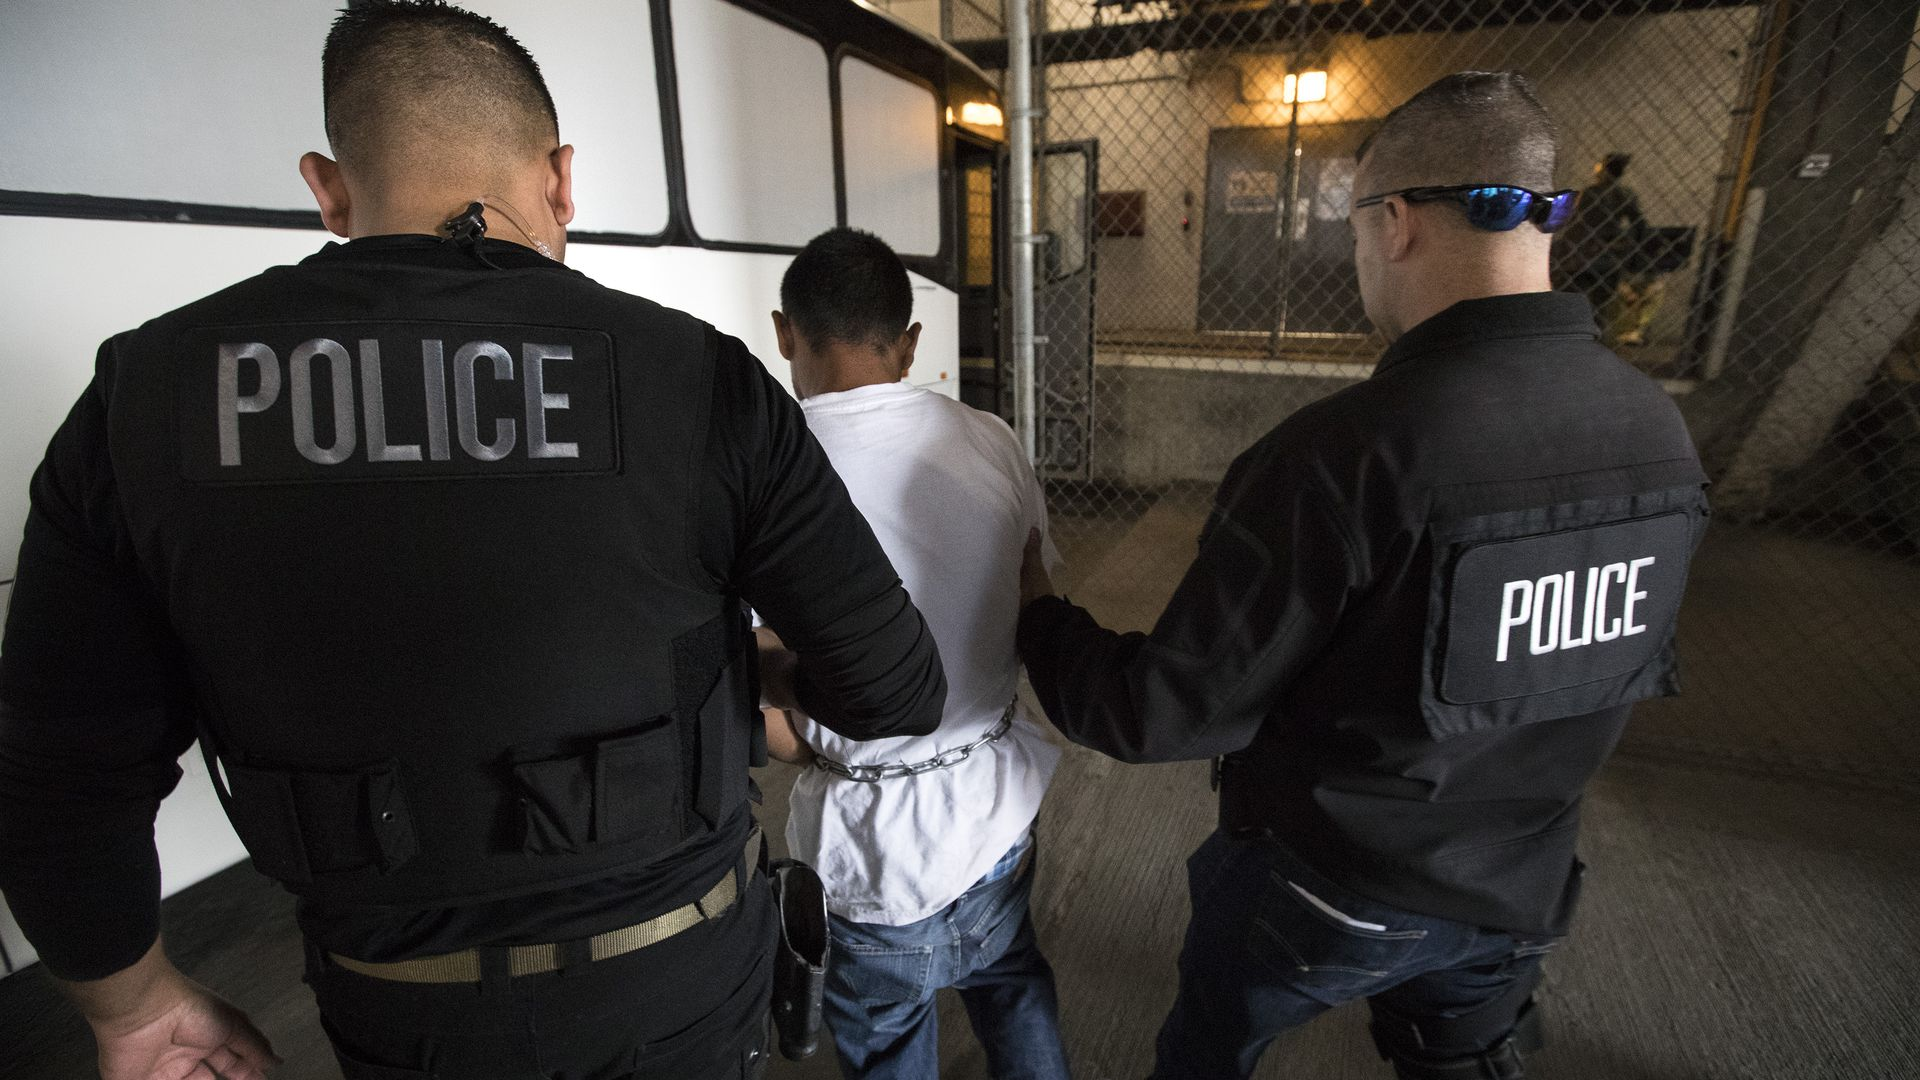 23-year-old Juan Vega, right, is escorted by agents into the ICE downtown staging facility in Los Angeles, Calif.